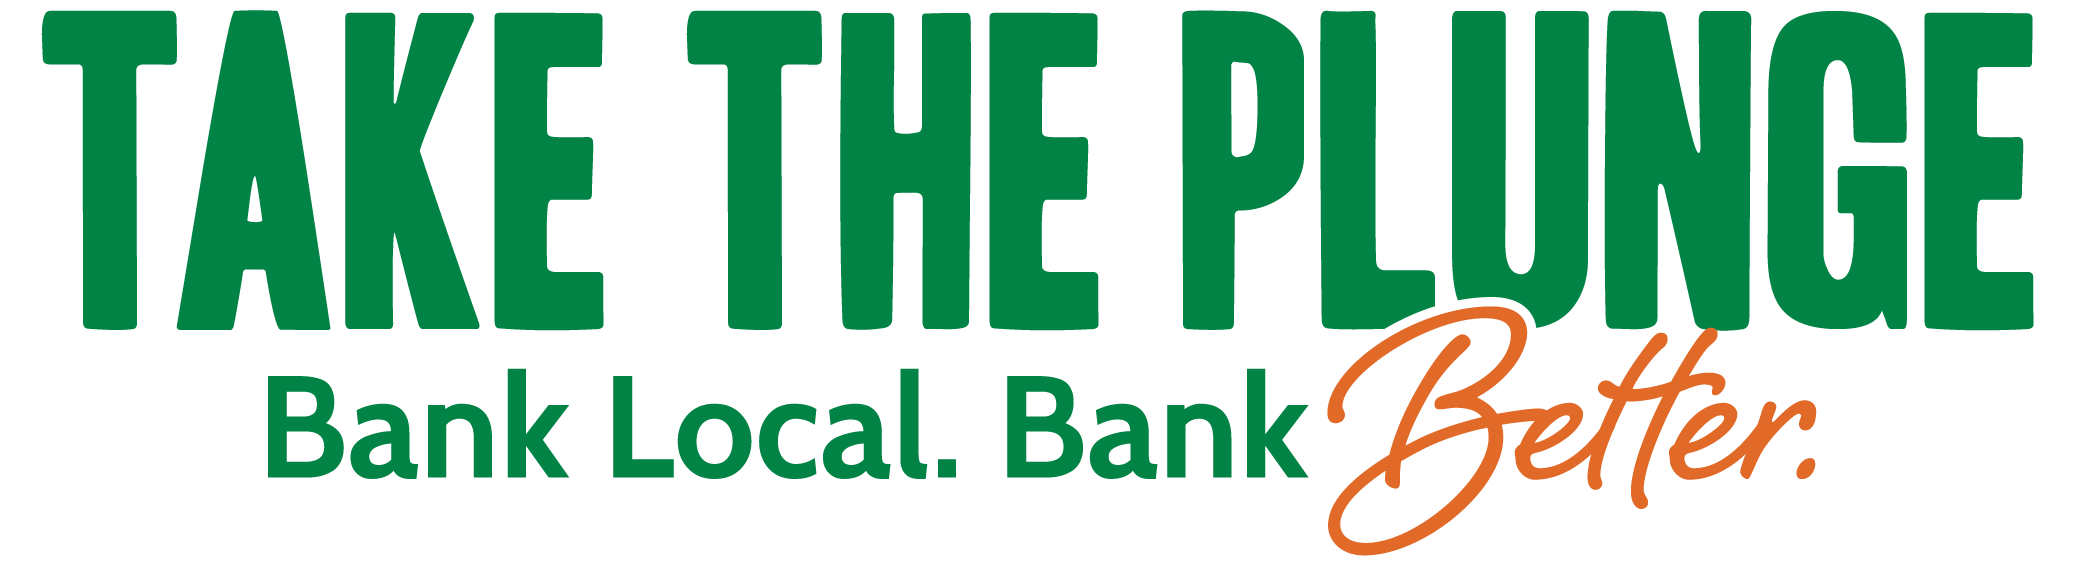 Take the plunge. Bank Local. Bank Better.